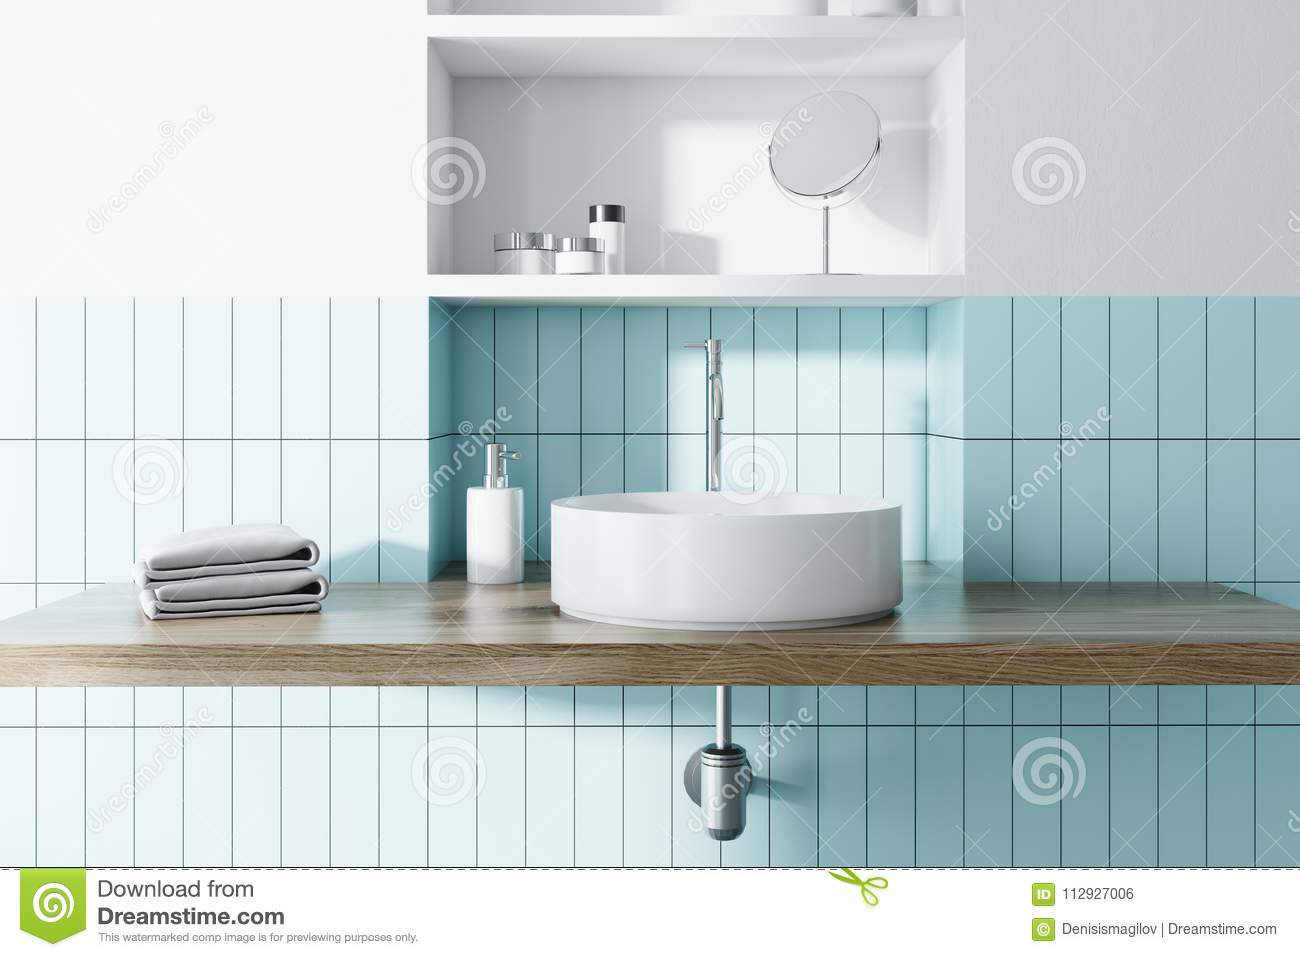 Sink In A Blue And White Bathroom Interior Stock Illustration ...